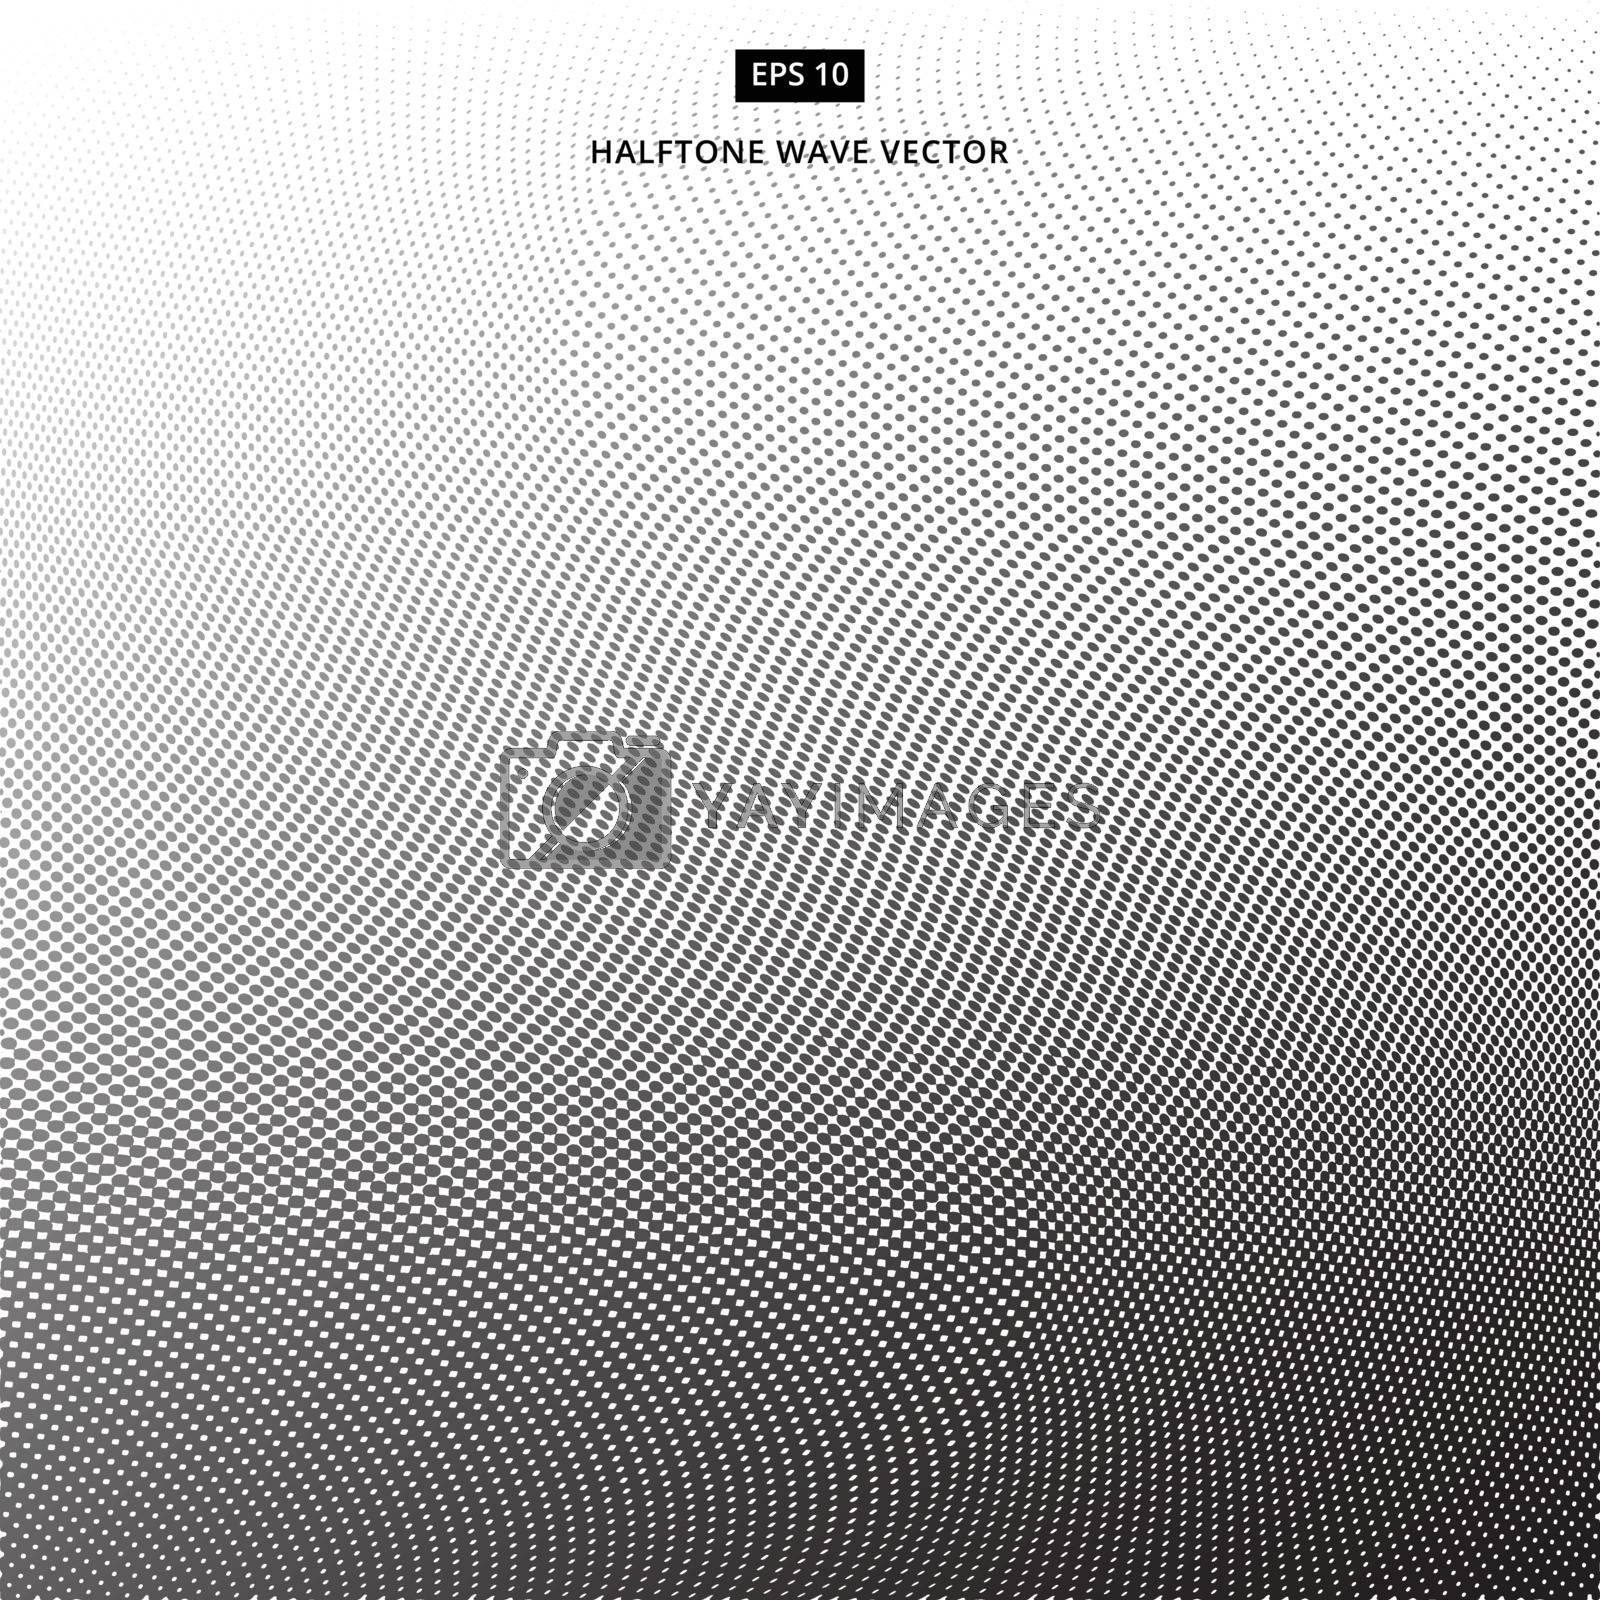 Abstract dotted background. Halftone wave effect vector white background